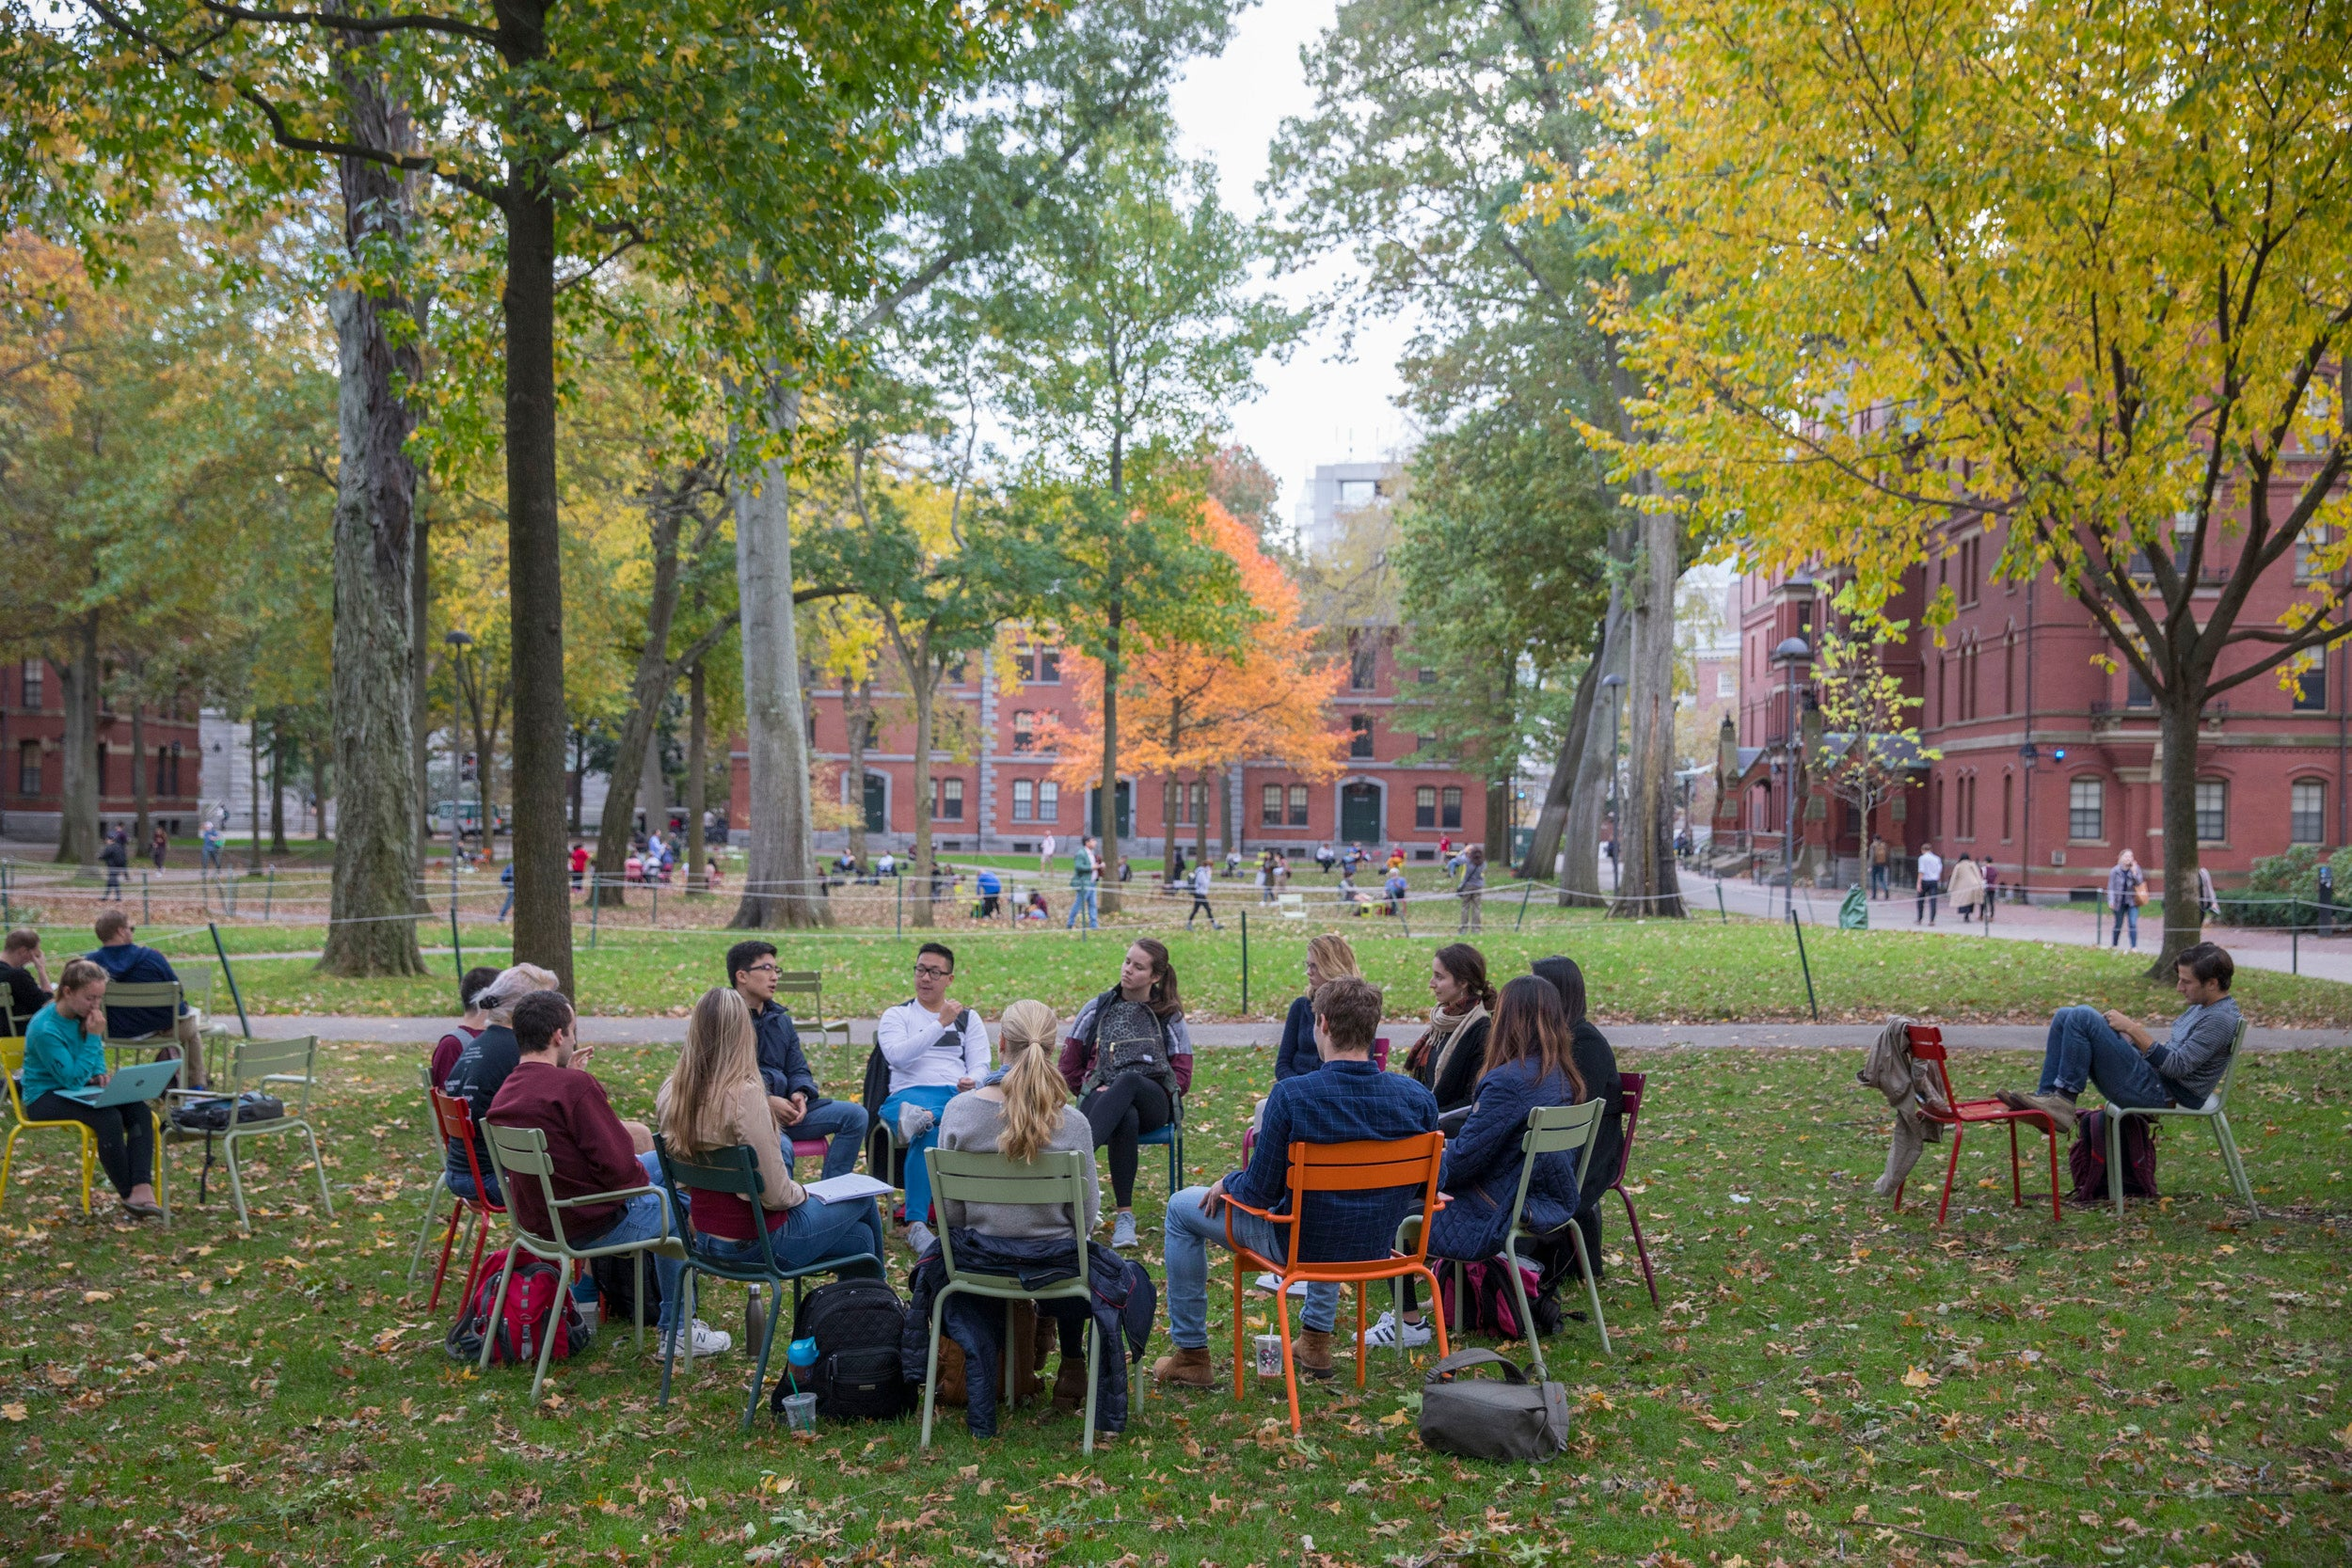 A circle of students sit in chairs in Harvard Yard.